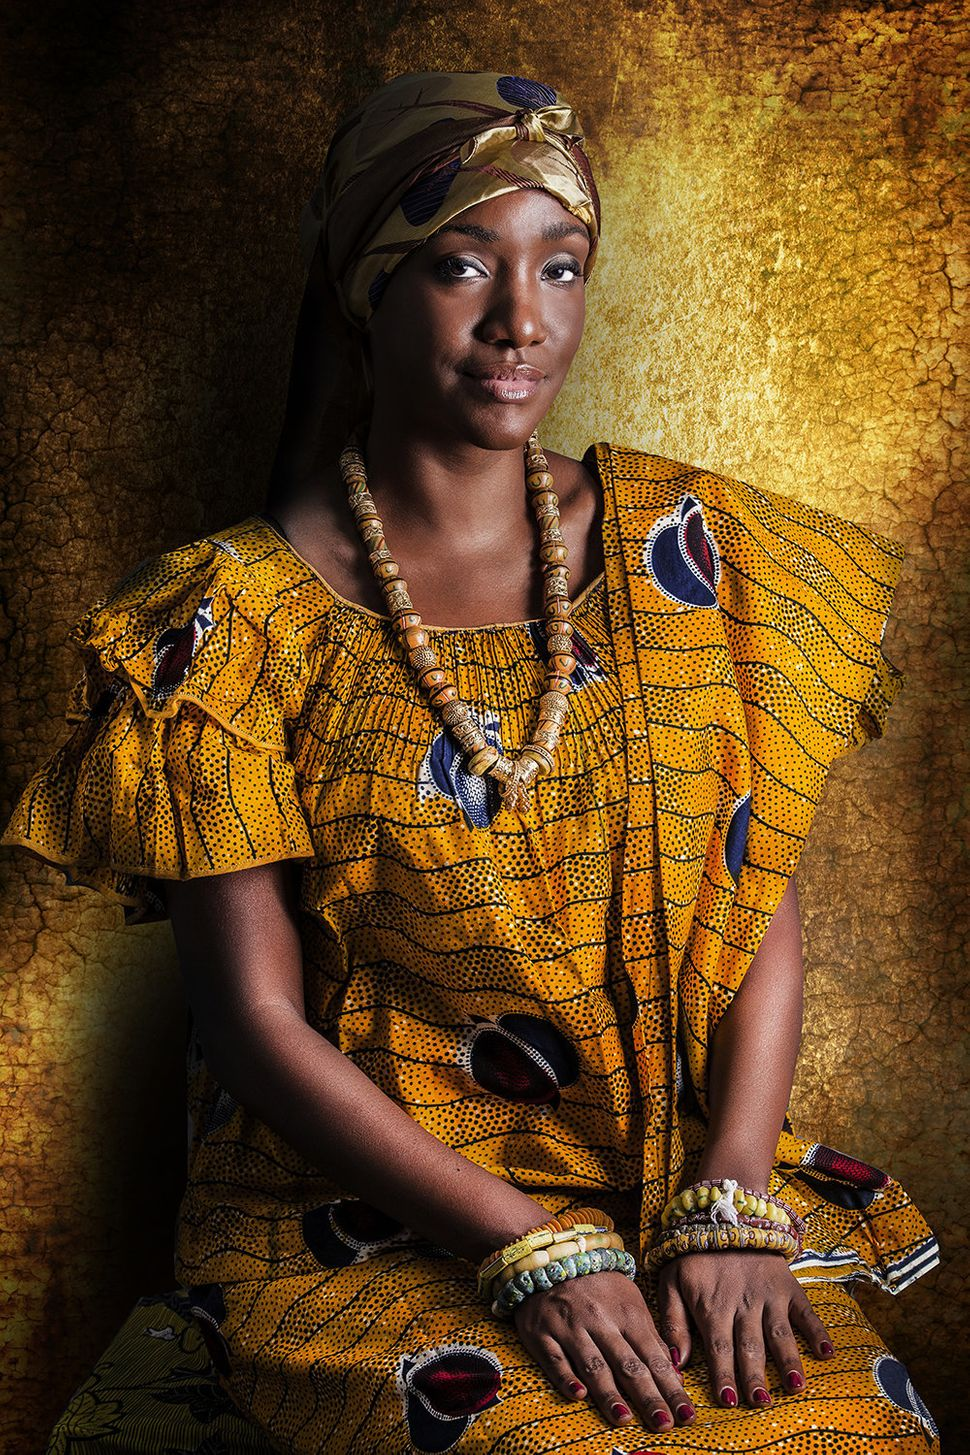 Naema Assassi is a real estate business developer. Her family is from the center of the Ivory Coast (Akan). Naema grew up in